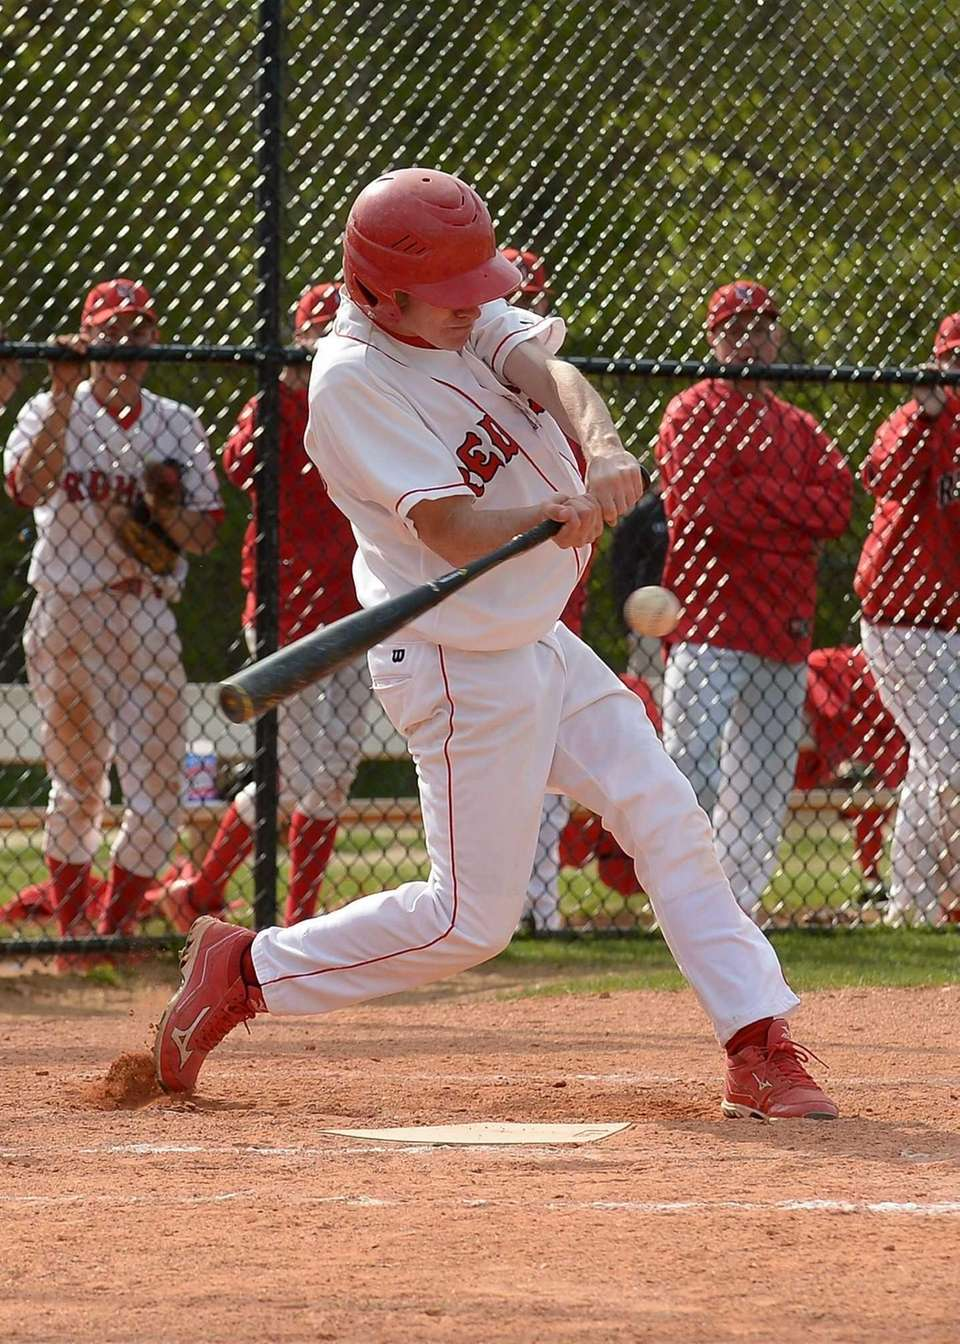 East Islip's Jared Voullo (28) takes a swing